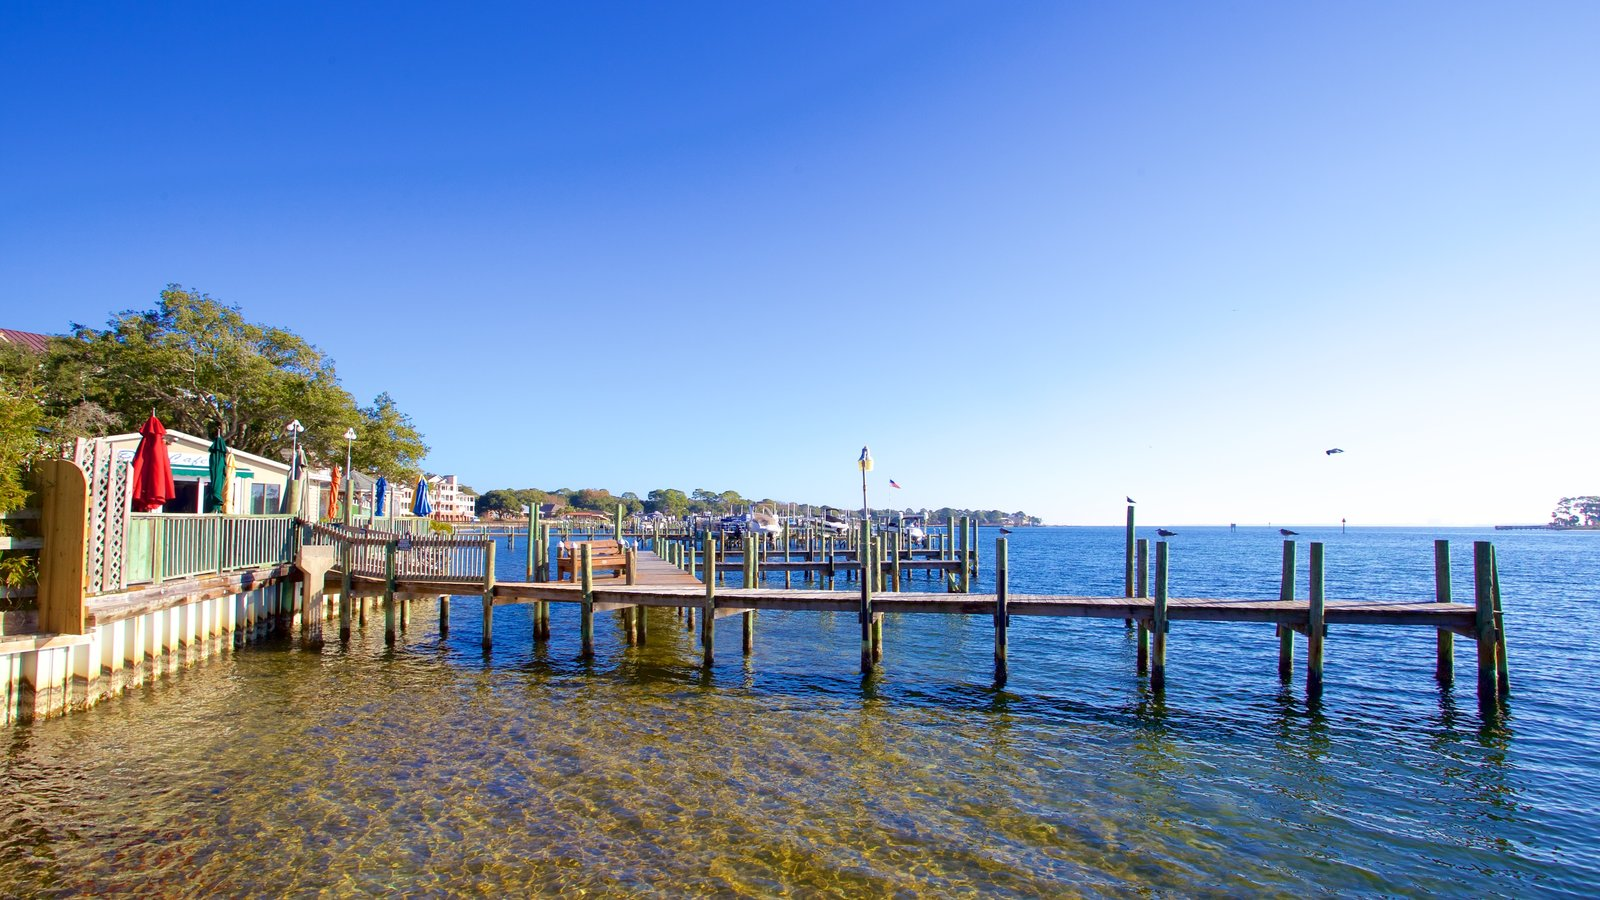 Fort Walton Beach which includes a sandy beach and a bay or harbor